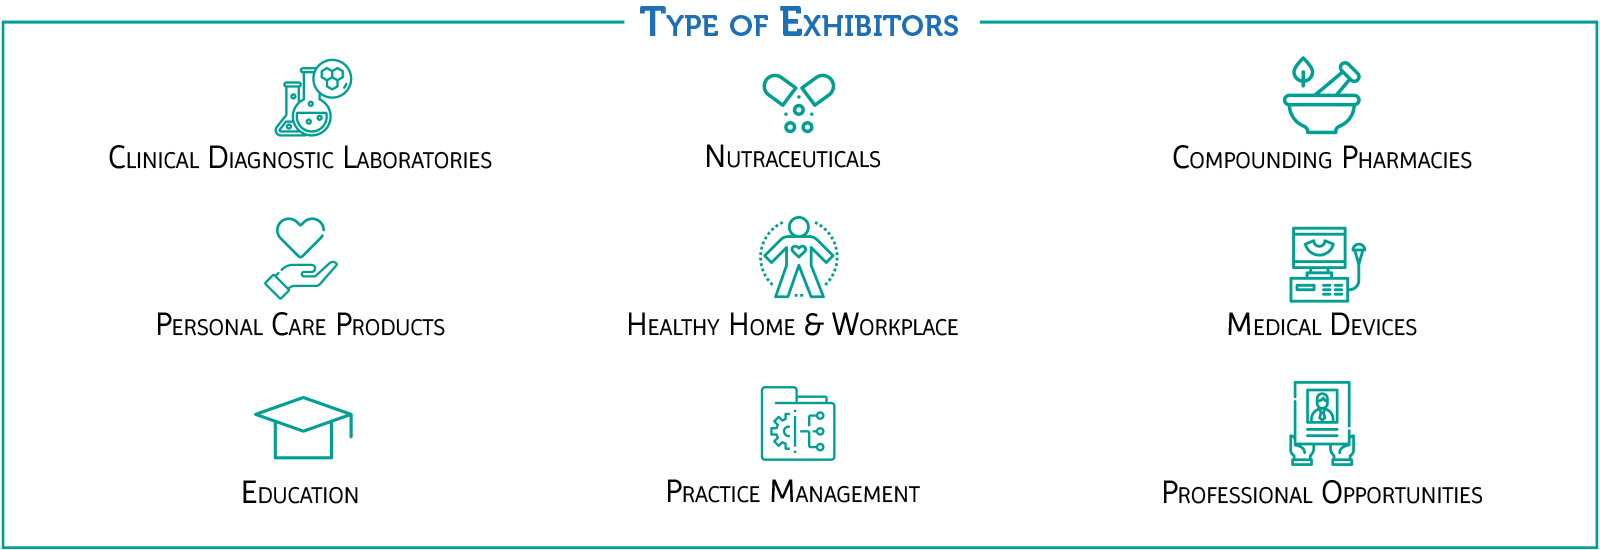 Type-of-exhibitors